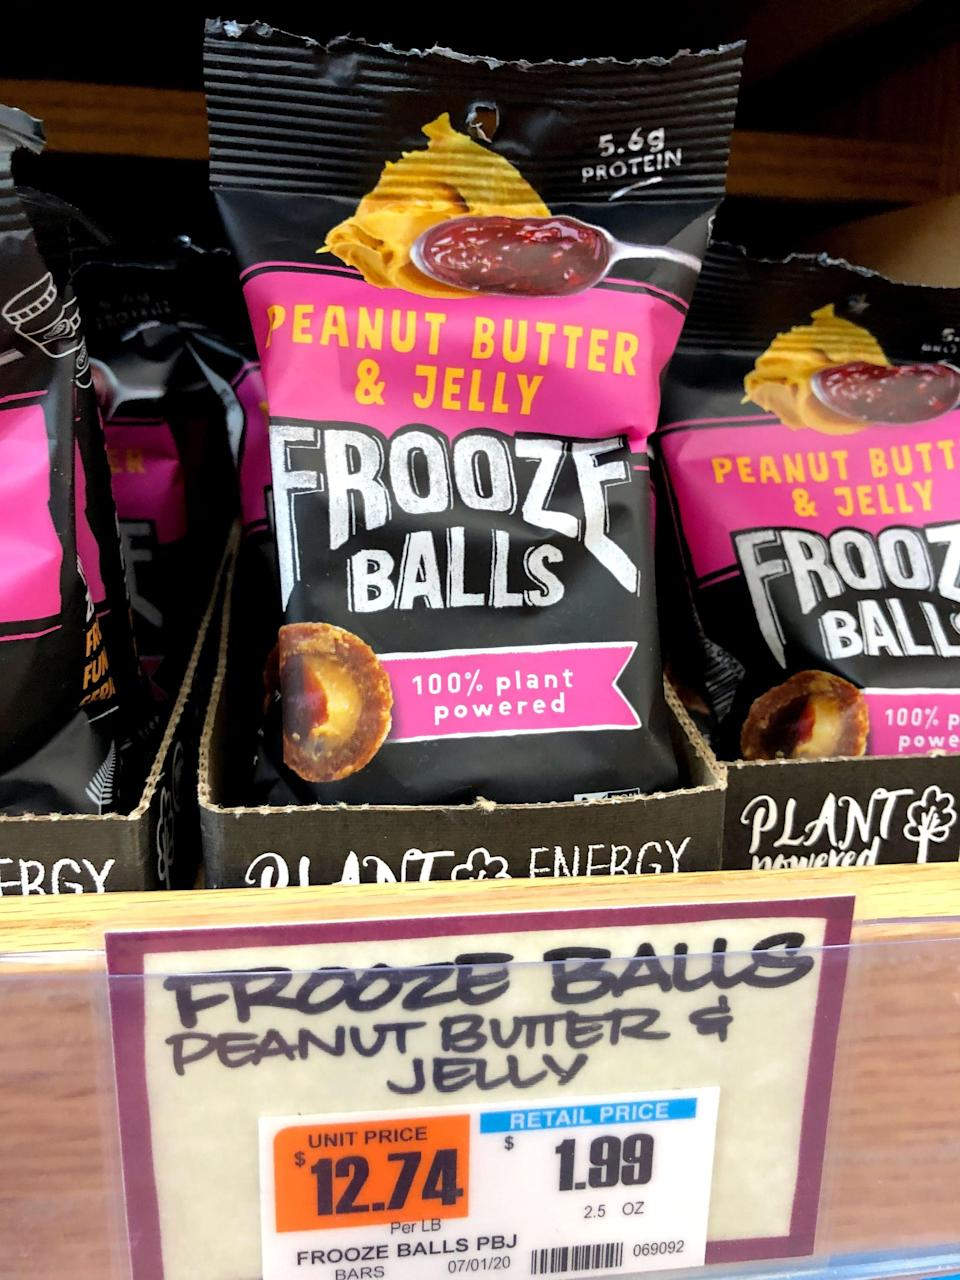 """<p>Both flavors of Frooze Balls each cost $2, which is pretty typical for a protein bar. I like the idea of these balls better than a bar, though, because it makes it easier to have just one little taste for an after-meal treat. A bag would also be great as a quick on-the-go breakfast paired with a small smoothie or to nosh on as a post-workout snack. </p> <p>Of course, you can make your own date and nut <a href=""""https://www.popsugar.com/fitness/Chocolate-Coconut-Protein-Balls-40232548"""" class=""""link rapid-noclick-resp"""" rel=""""nofollow noopener"""" target=""""_blank"""" data-ylk=""""slk:coconut-covered protein balls"""">coconut-covered protein balls</a>, but you can't beat the convenience of these Frooze Balls. I'll definitely buy these again. I hope they come out with more flavors!</p>"""